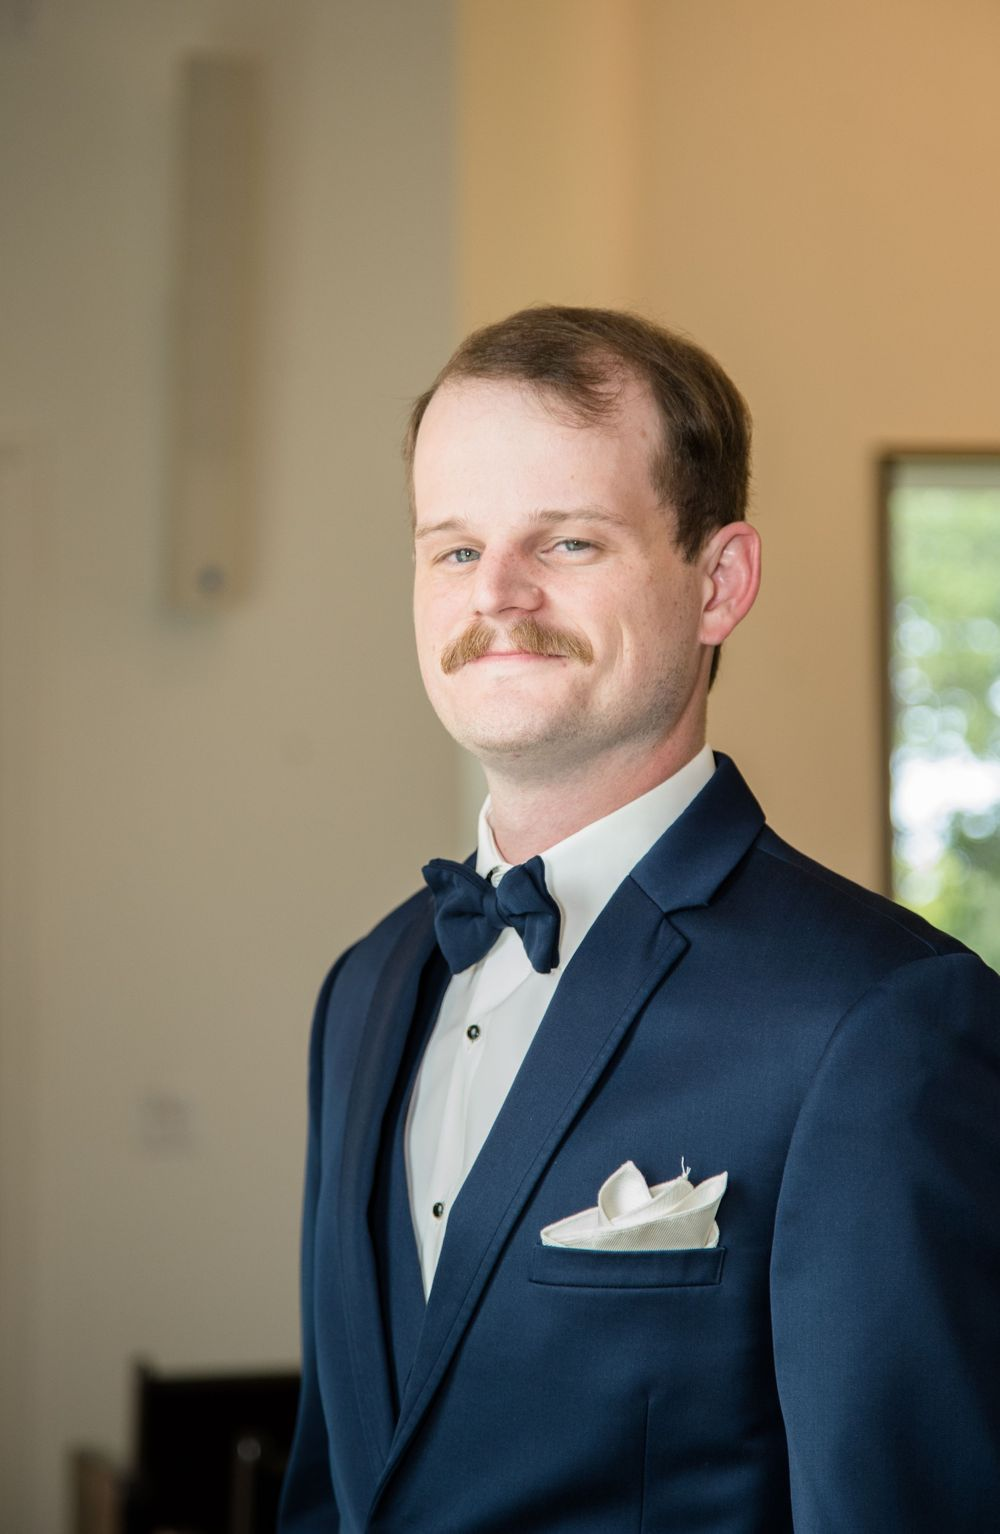 Groom portrait inside wedding chapel at one preston events in gunther texas